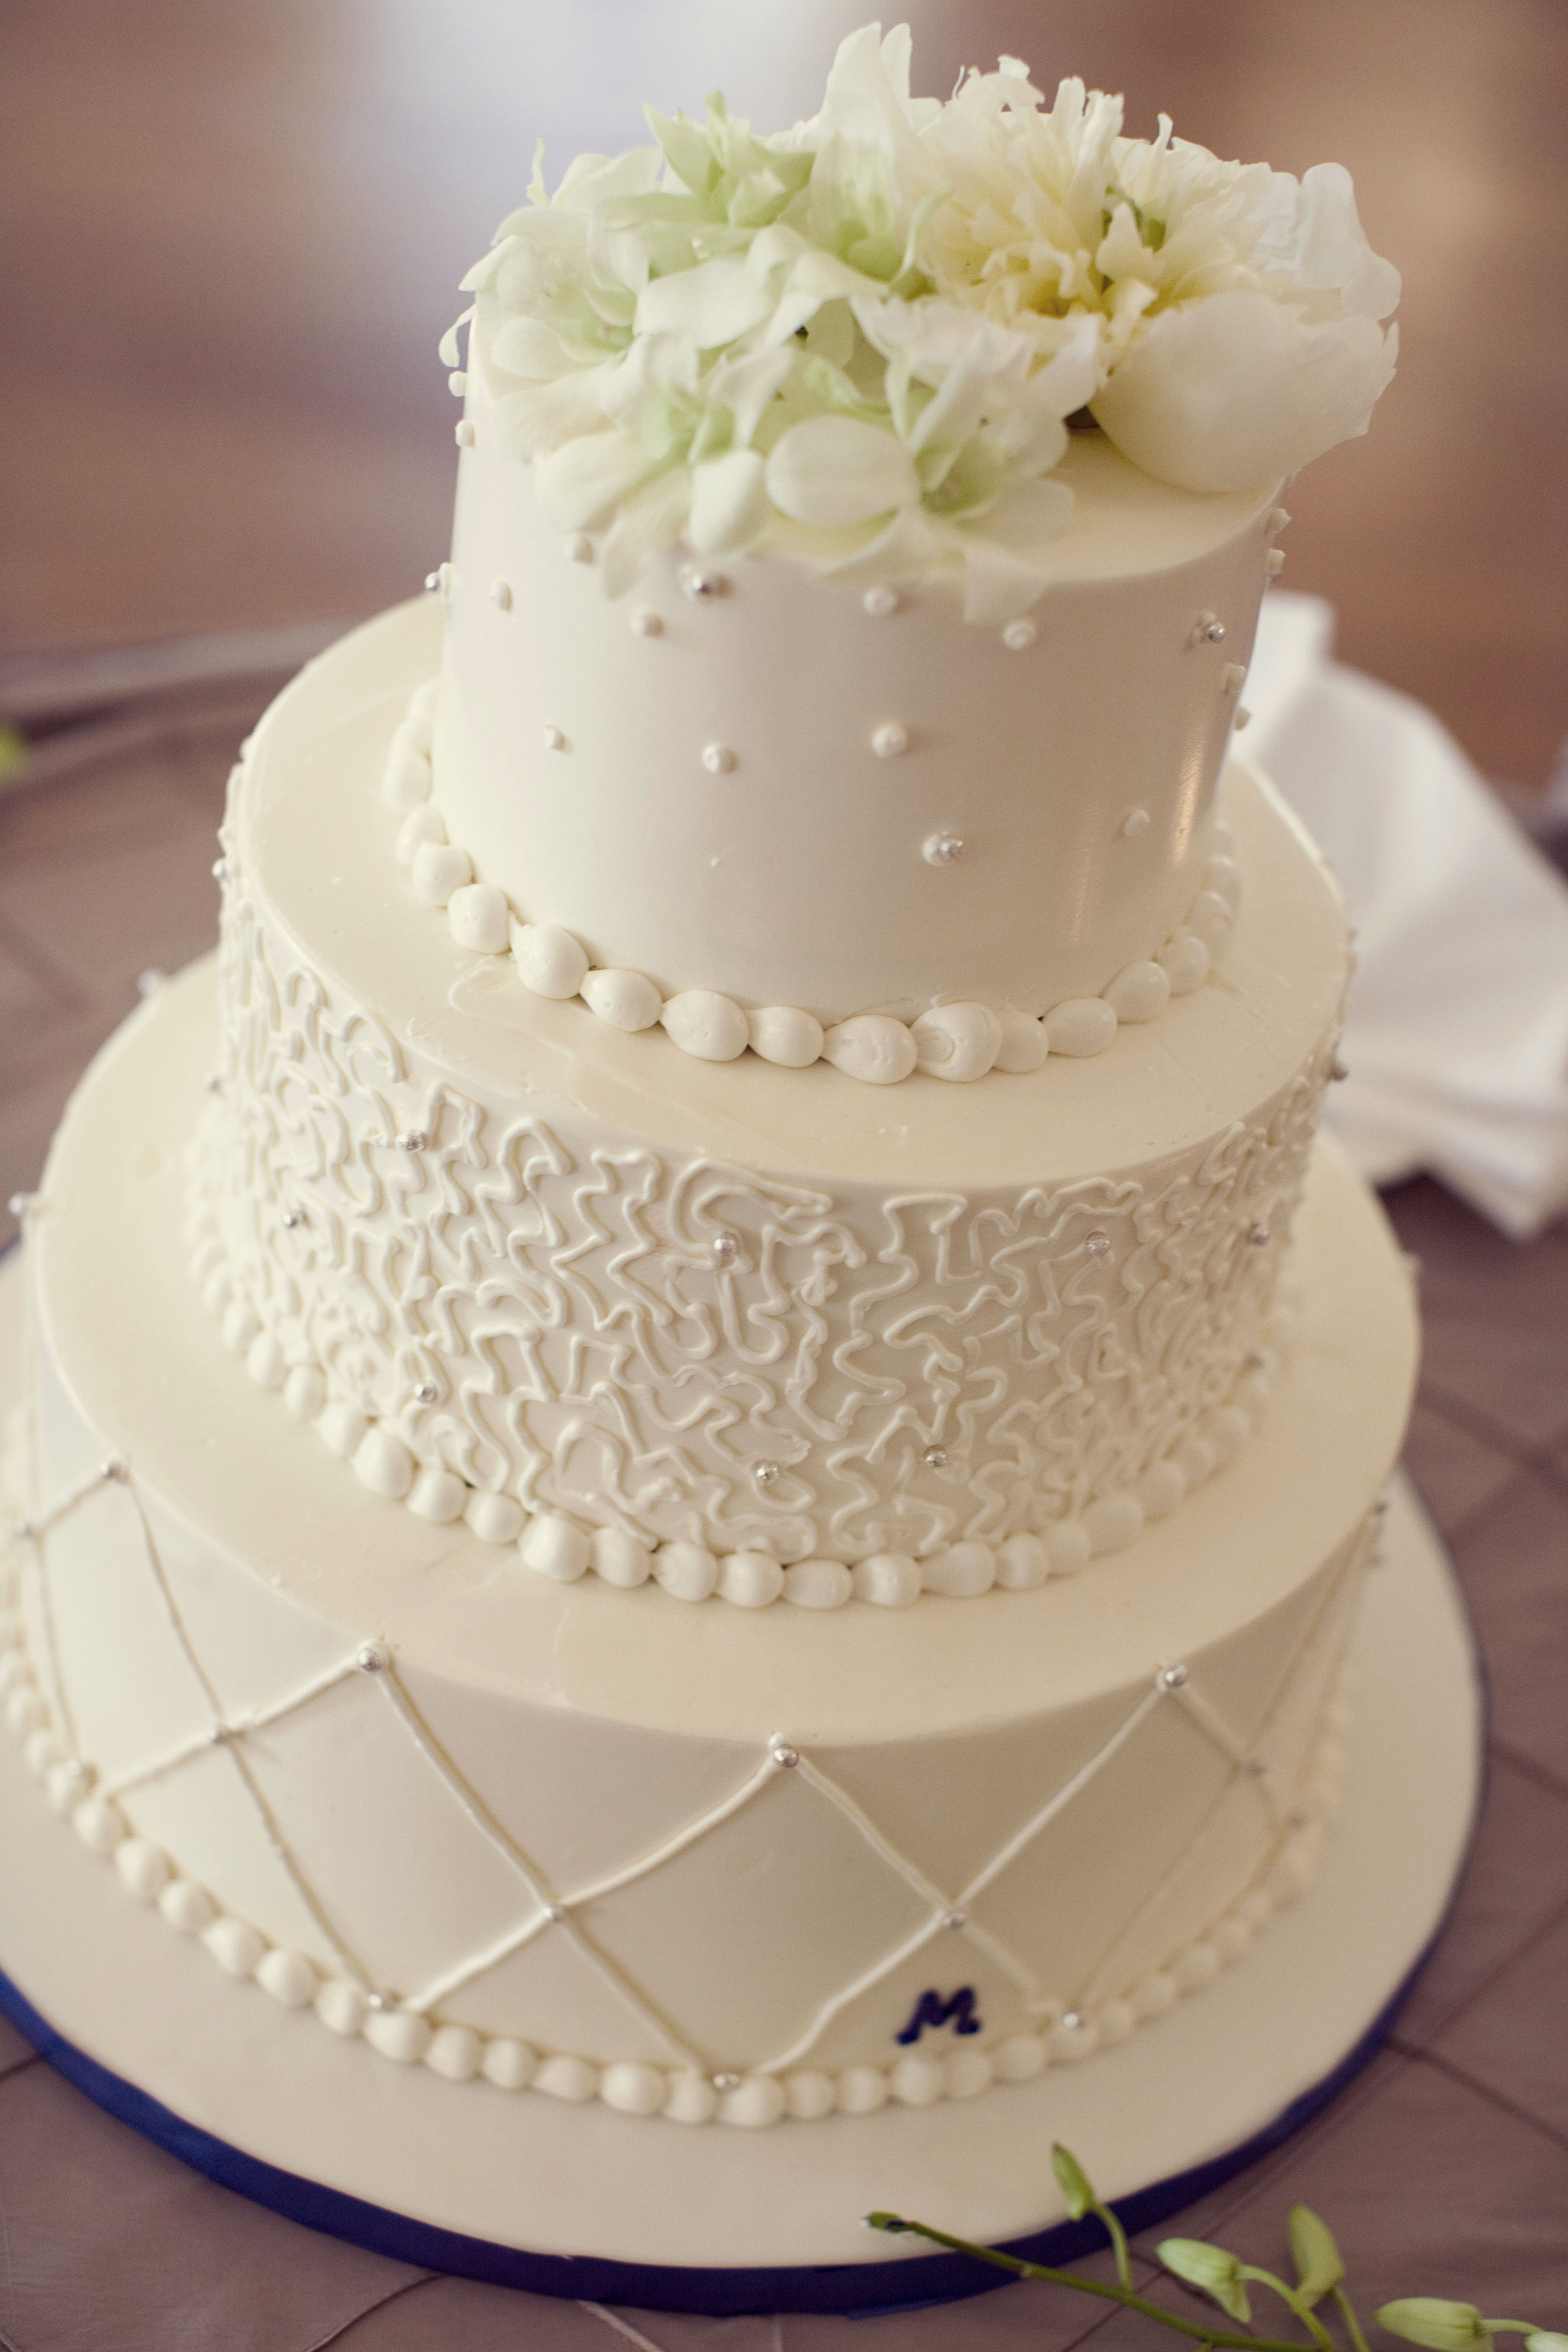 Icing Wedding Cakes  Wedding Cake Icing Recipe